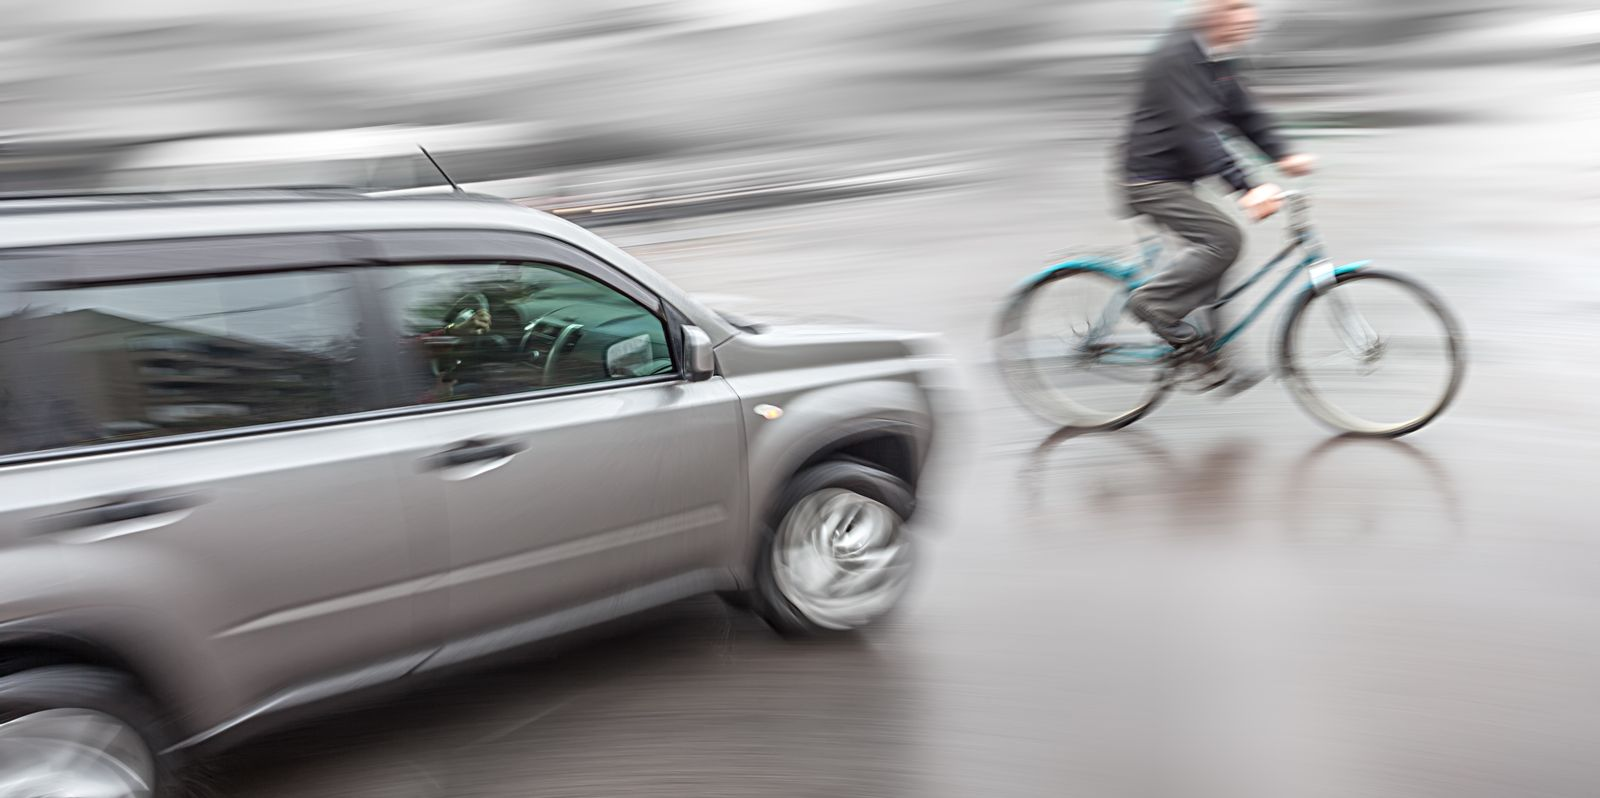 Bicyclist Riding in Front of Car